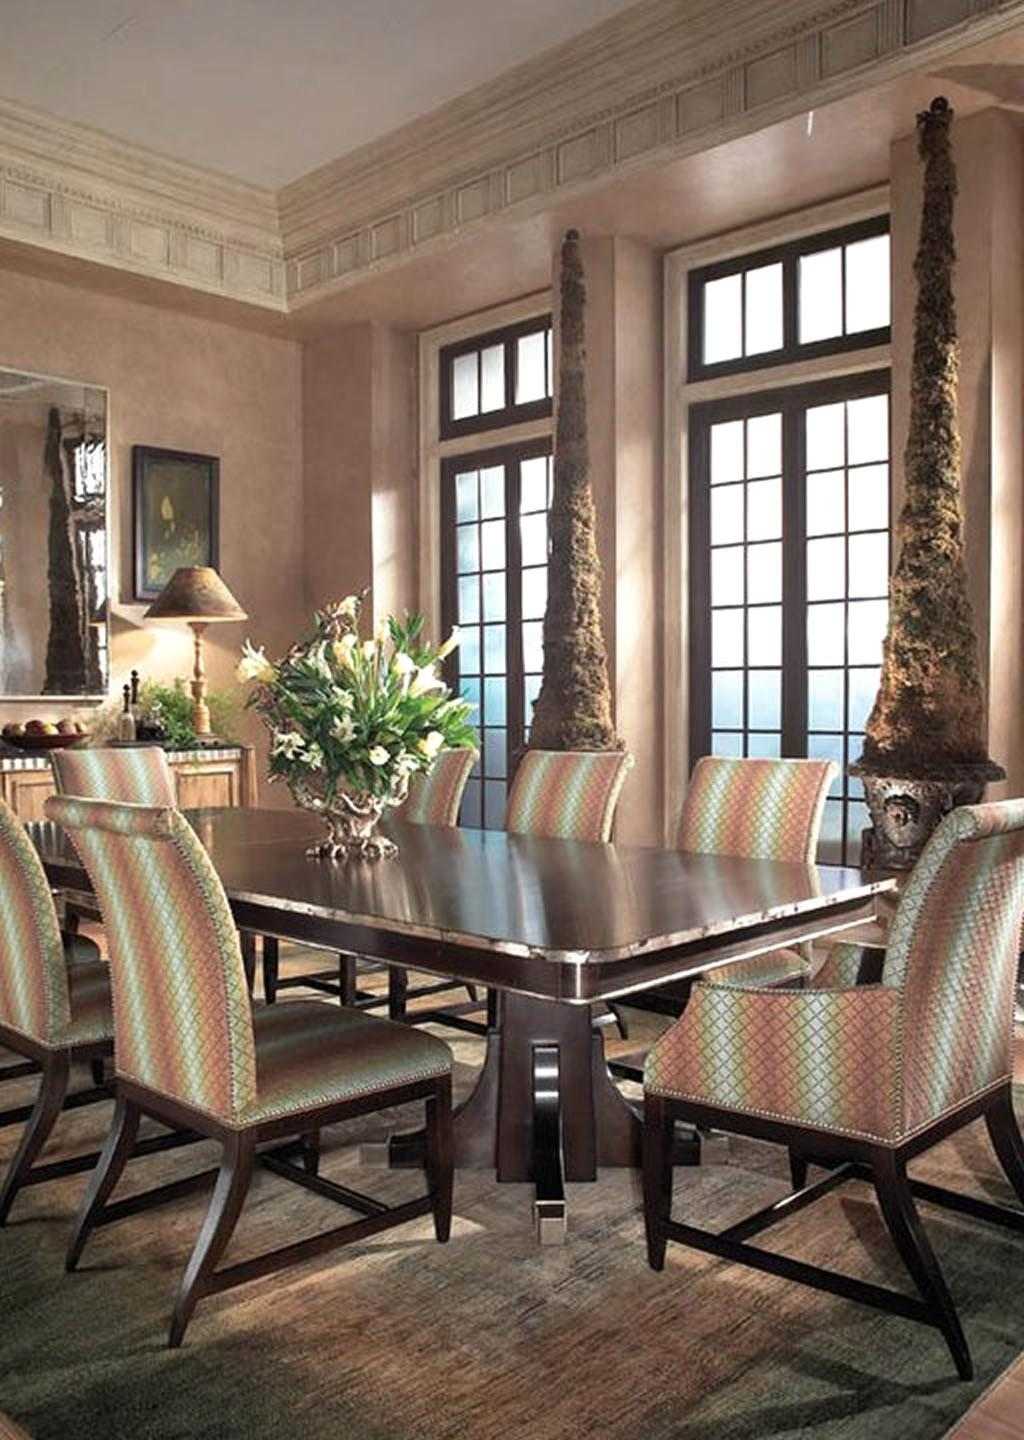 Luxury Dining Room Furniture Design Swaim High Point